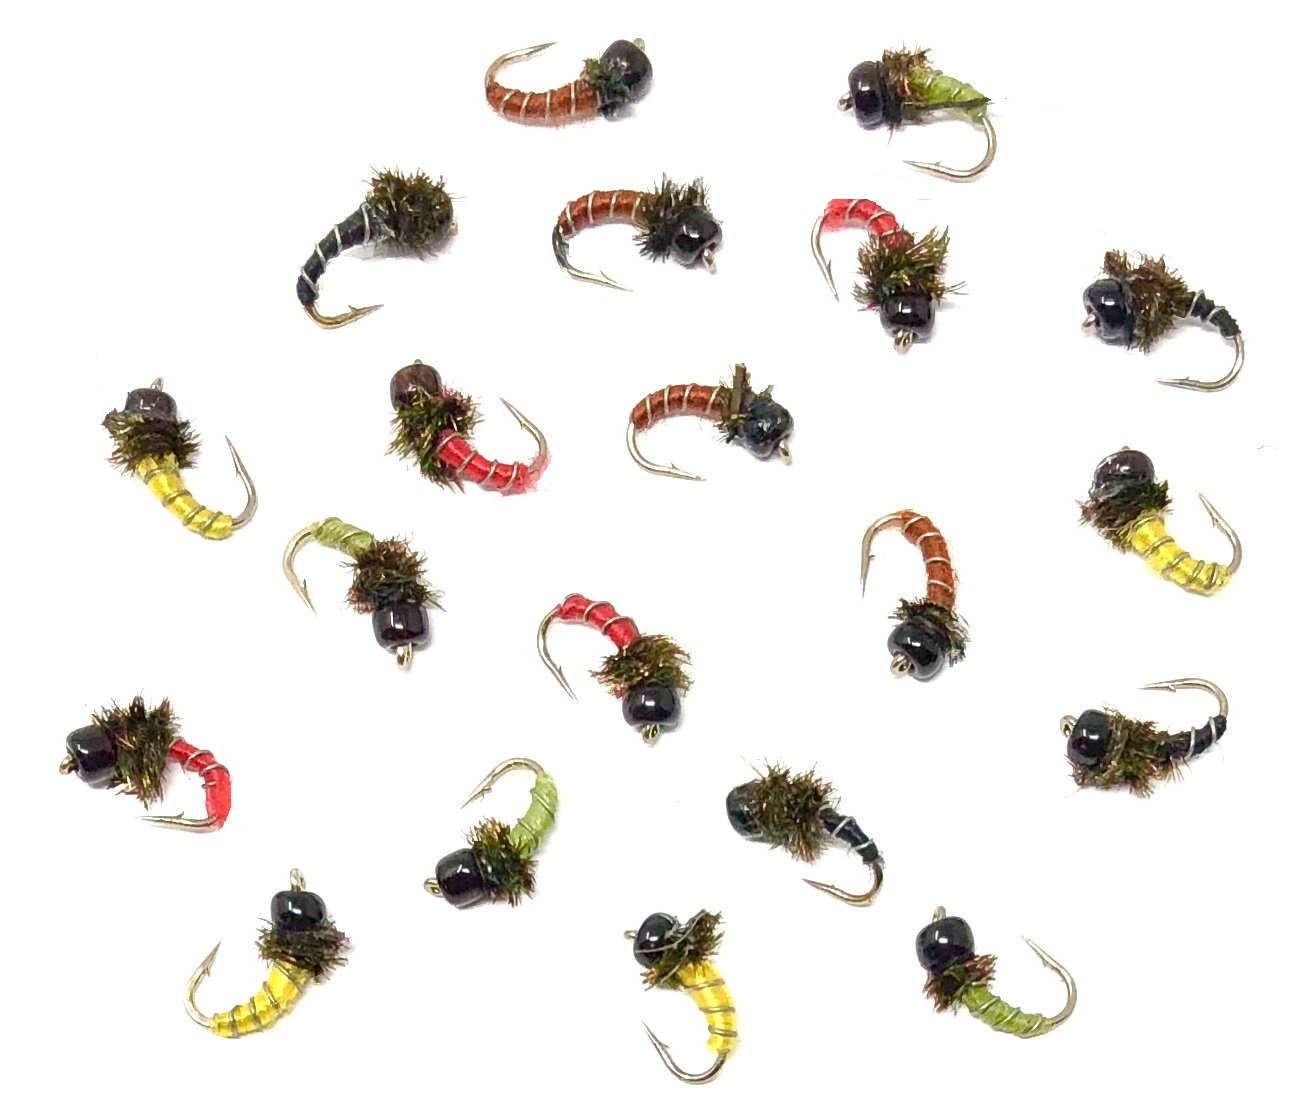 Feeder Creek Fly Fishing Trout Flies - Zebra Midge Assortment - 20 Wet Flies - Size 18, 20 (2 of Each Size) for Trout and Other Freshwater Fish RED, Yellow, Brown, Olive, and Black by Feeder Creek